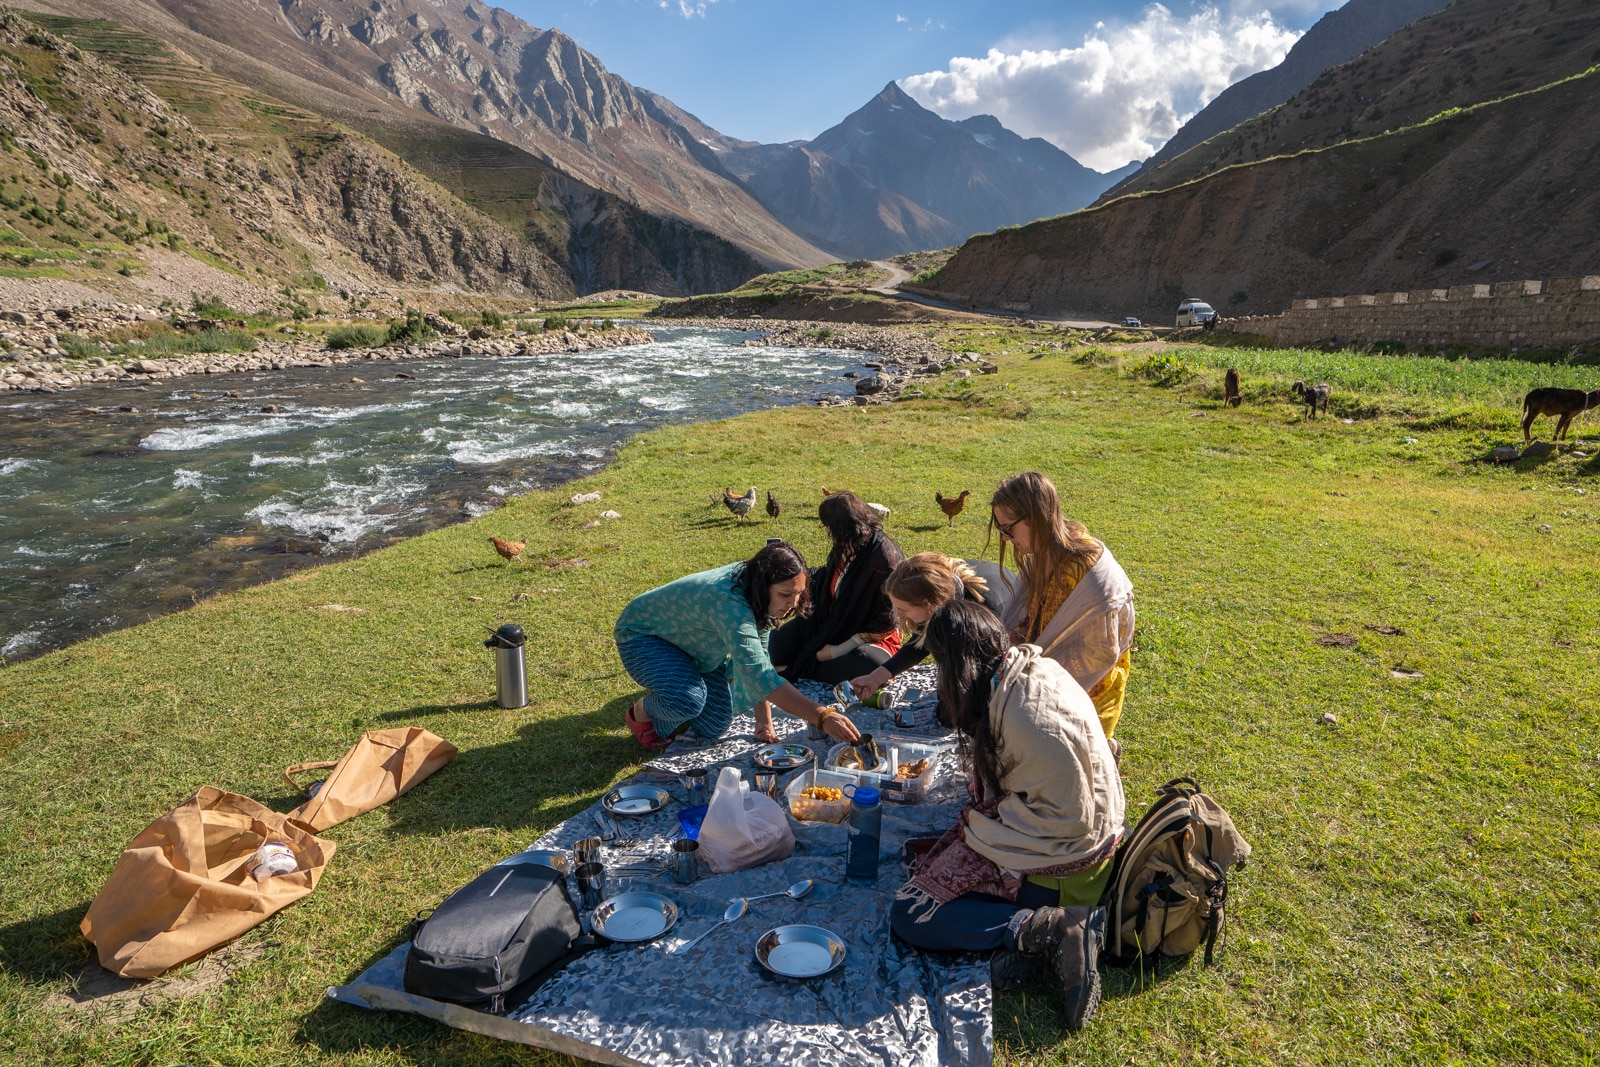 Women having a picnic lunch in Pakistan